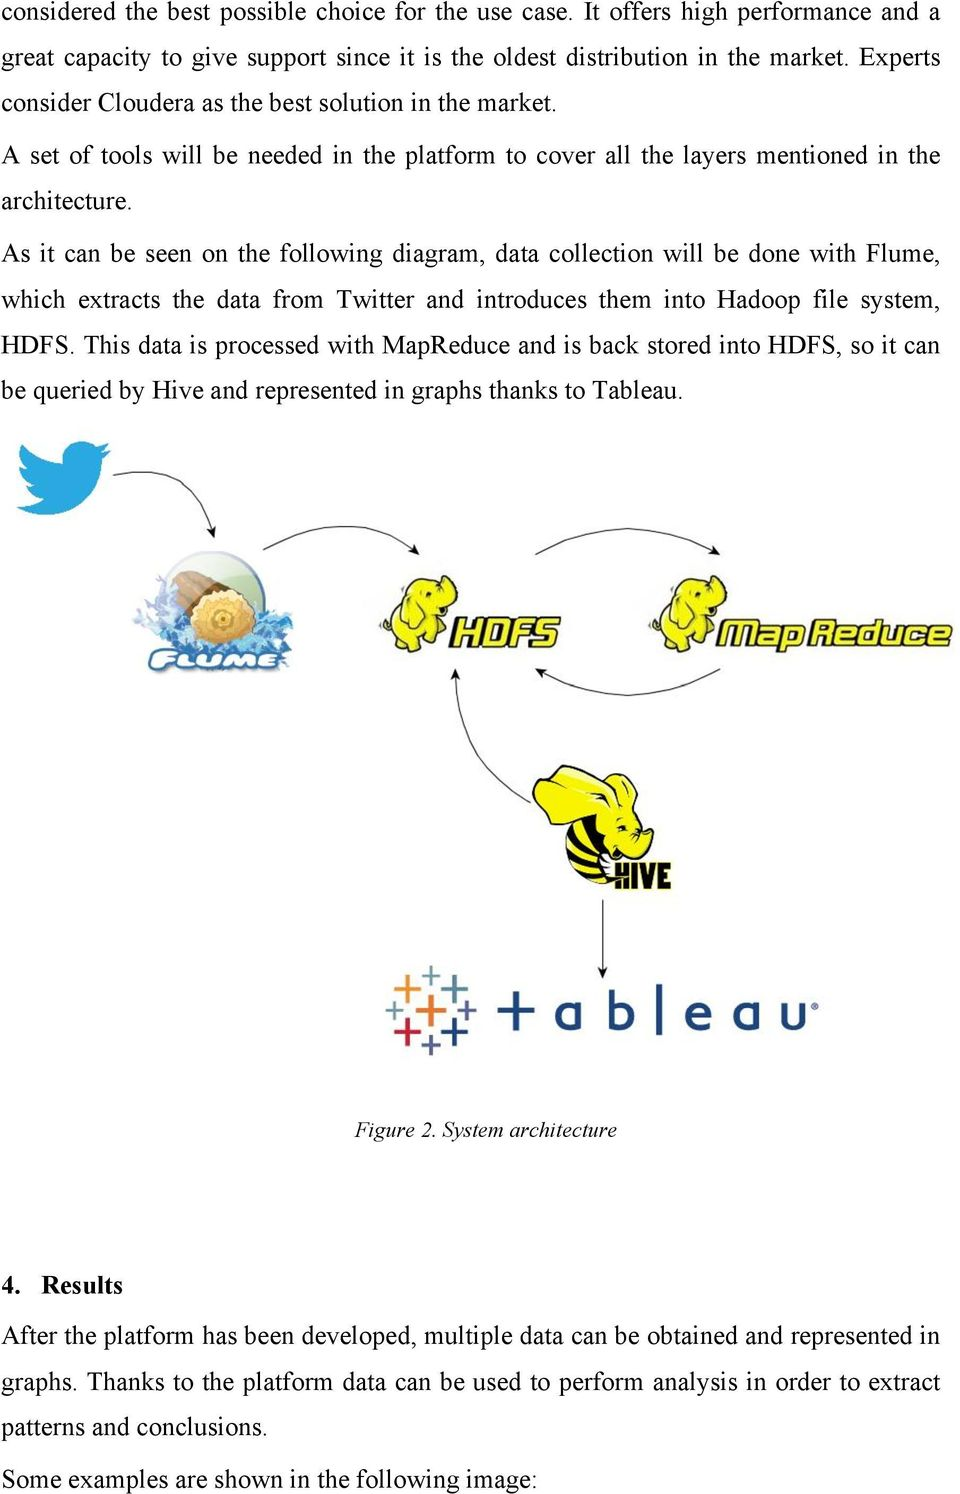 As it can be seen on the following diagram, data collection will be done with Flume, which extracts the data from Twitter and introduces them into Hadoop file system, HDFS.